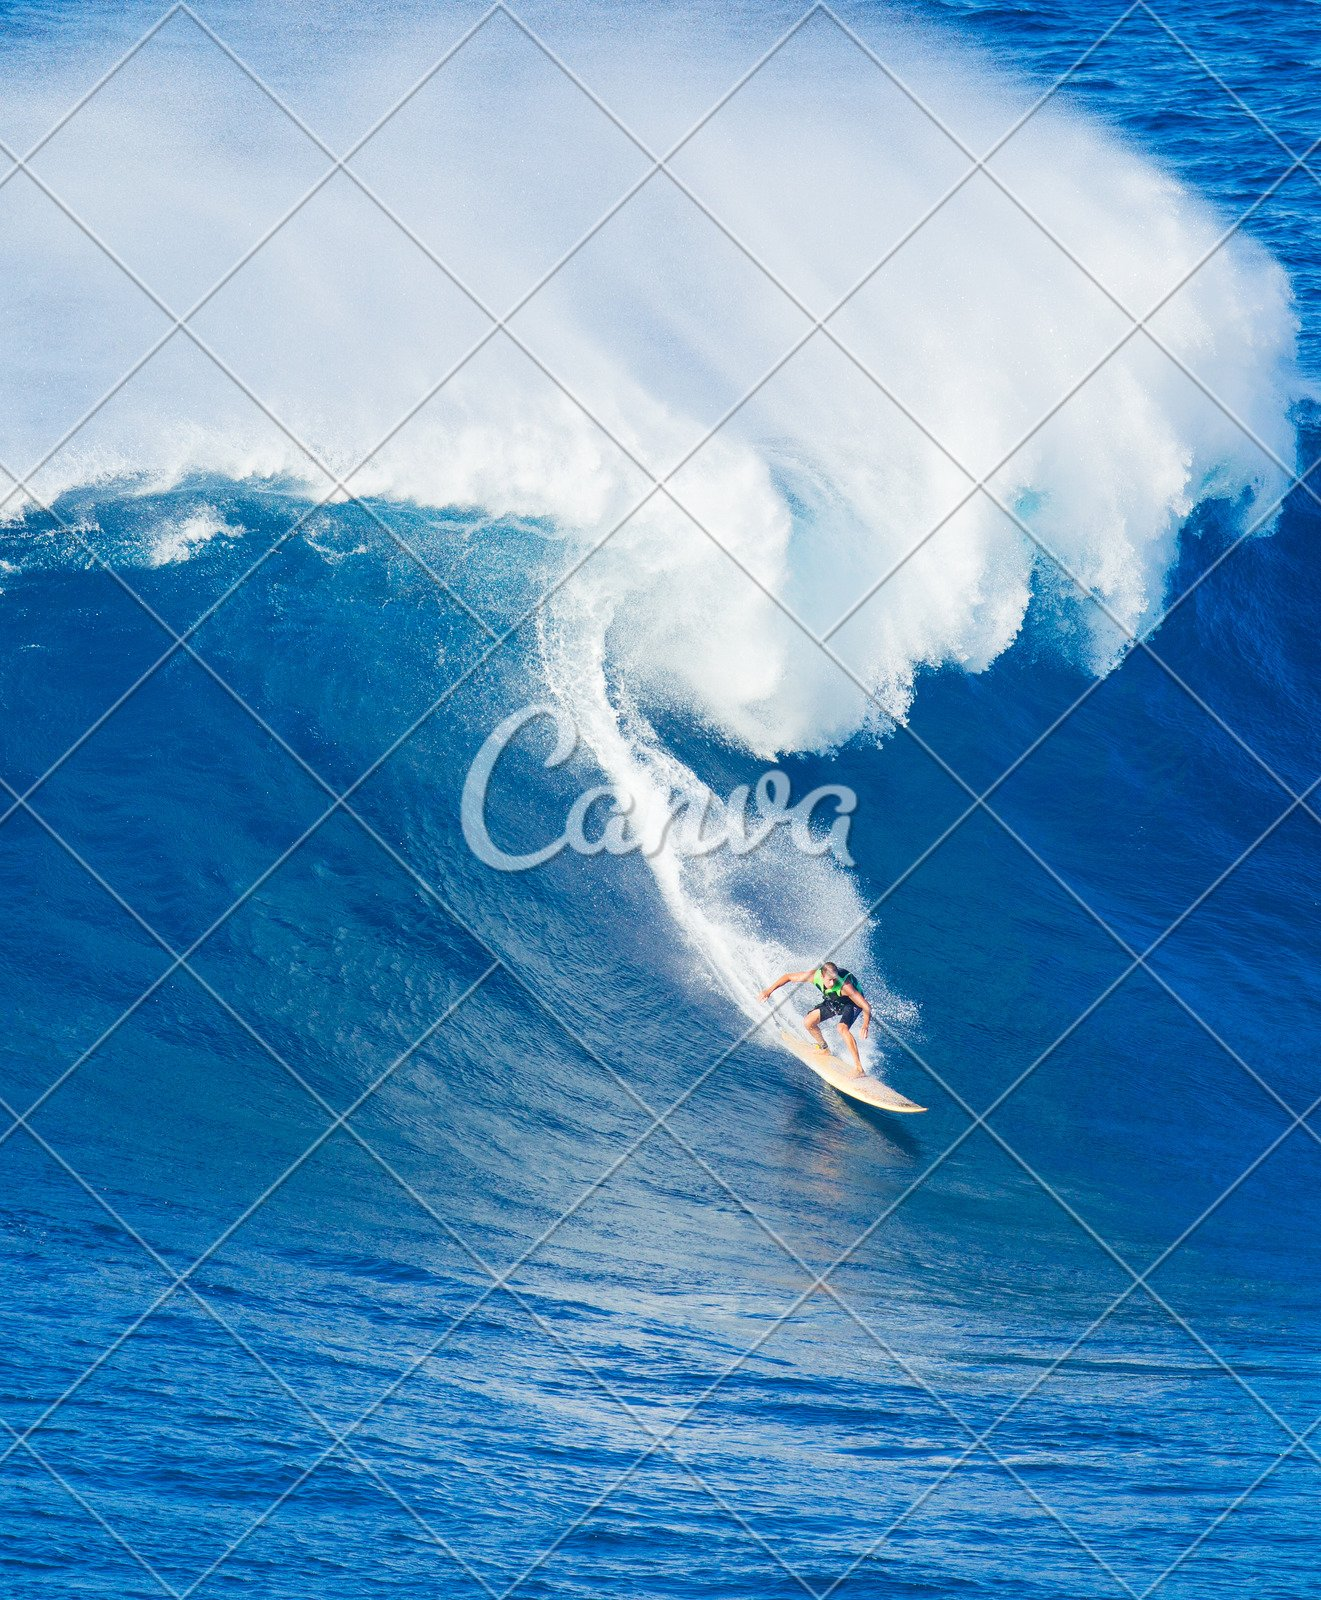 Surfer Riding Giant Wave Photos By Canva